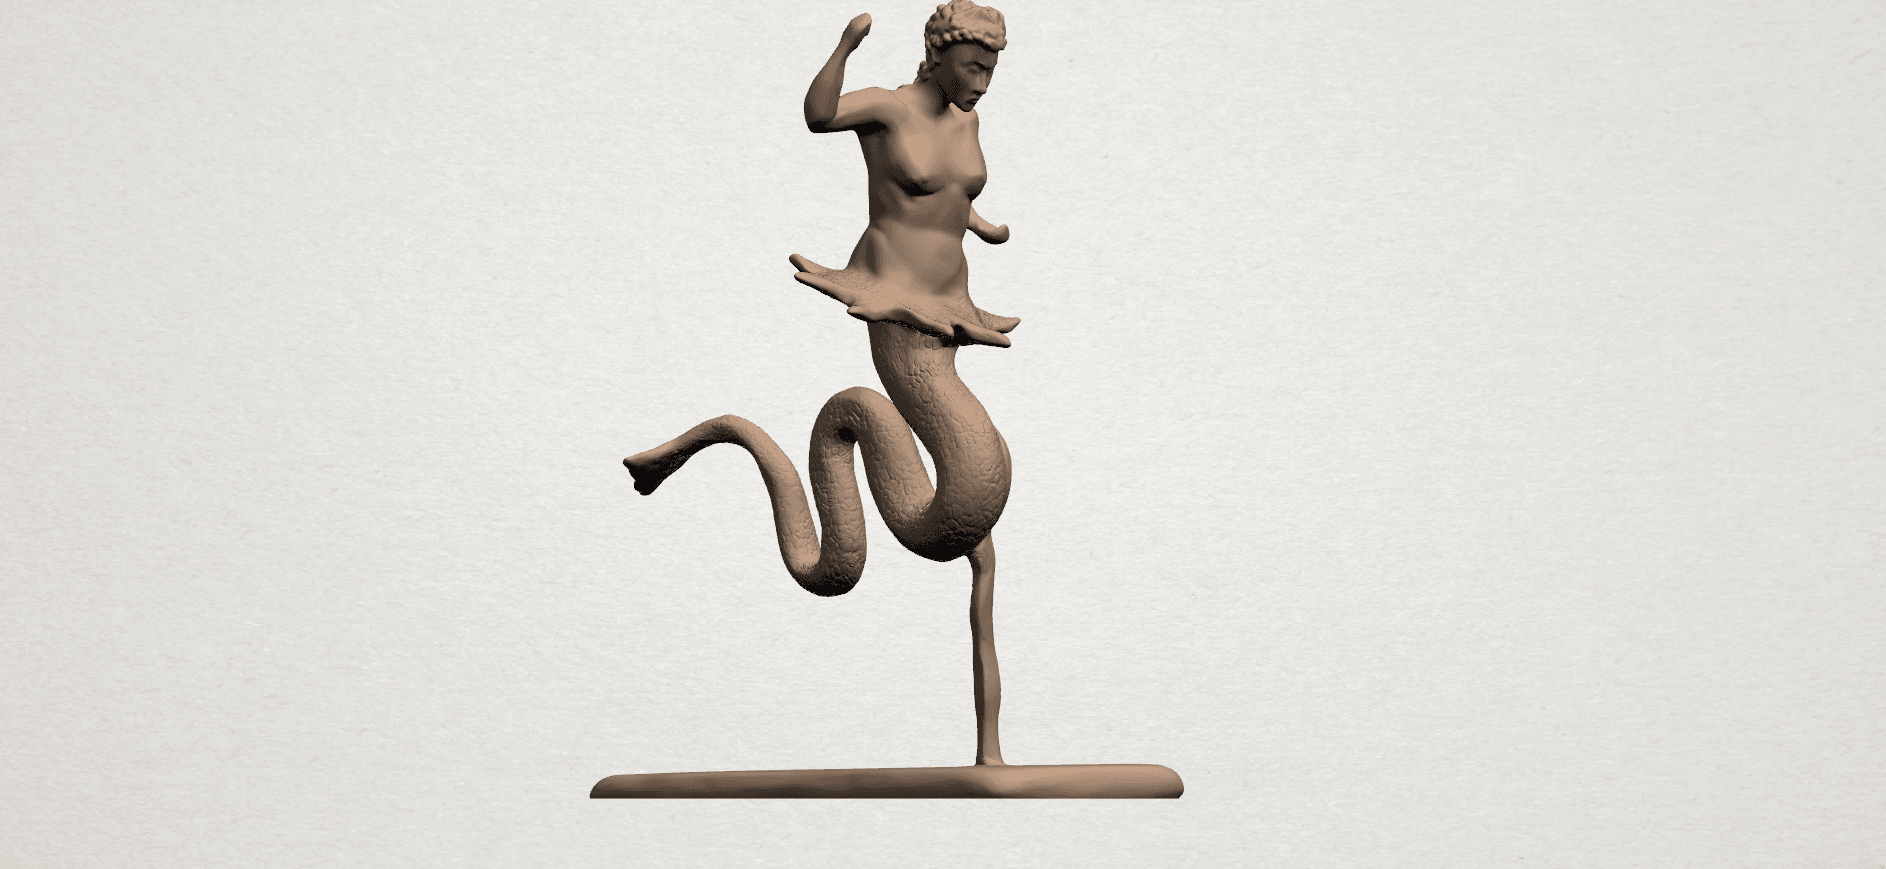 Ophidian A02.png Download free STL file Ophidian • 3D printing template, GeorgesNikkei